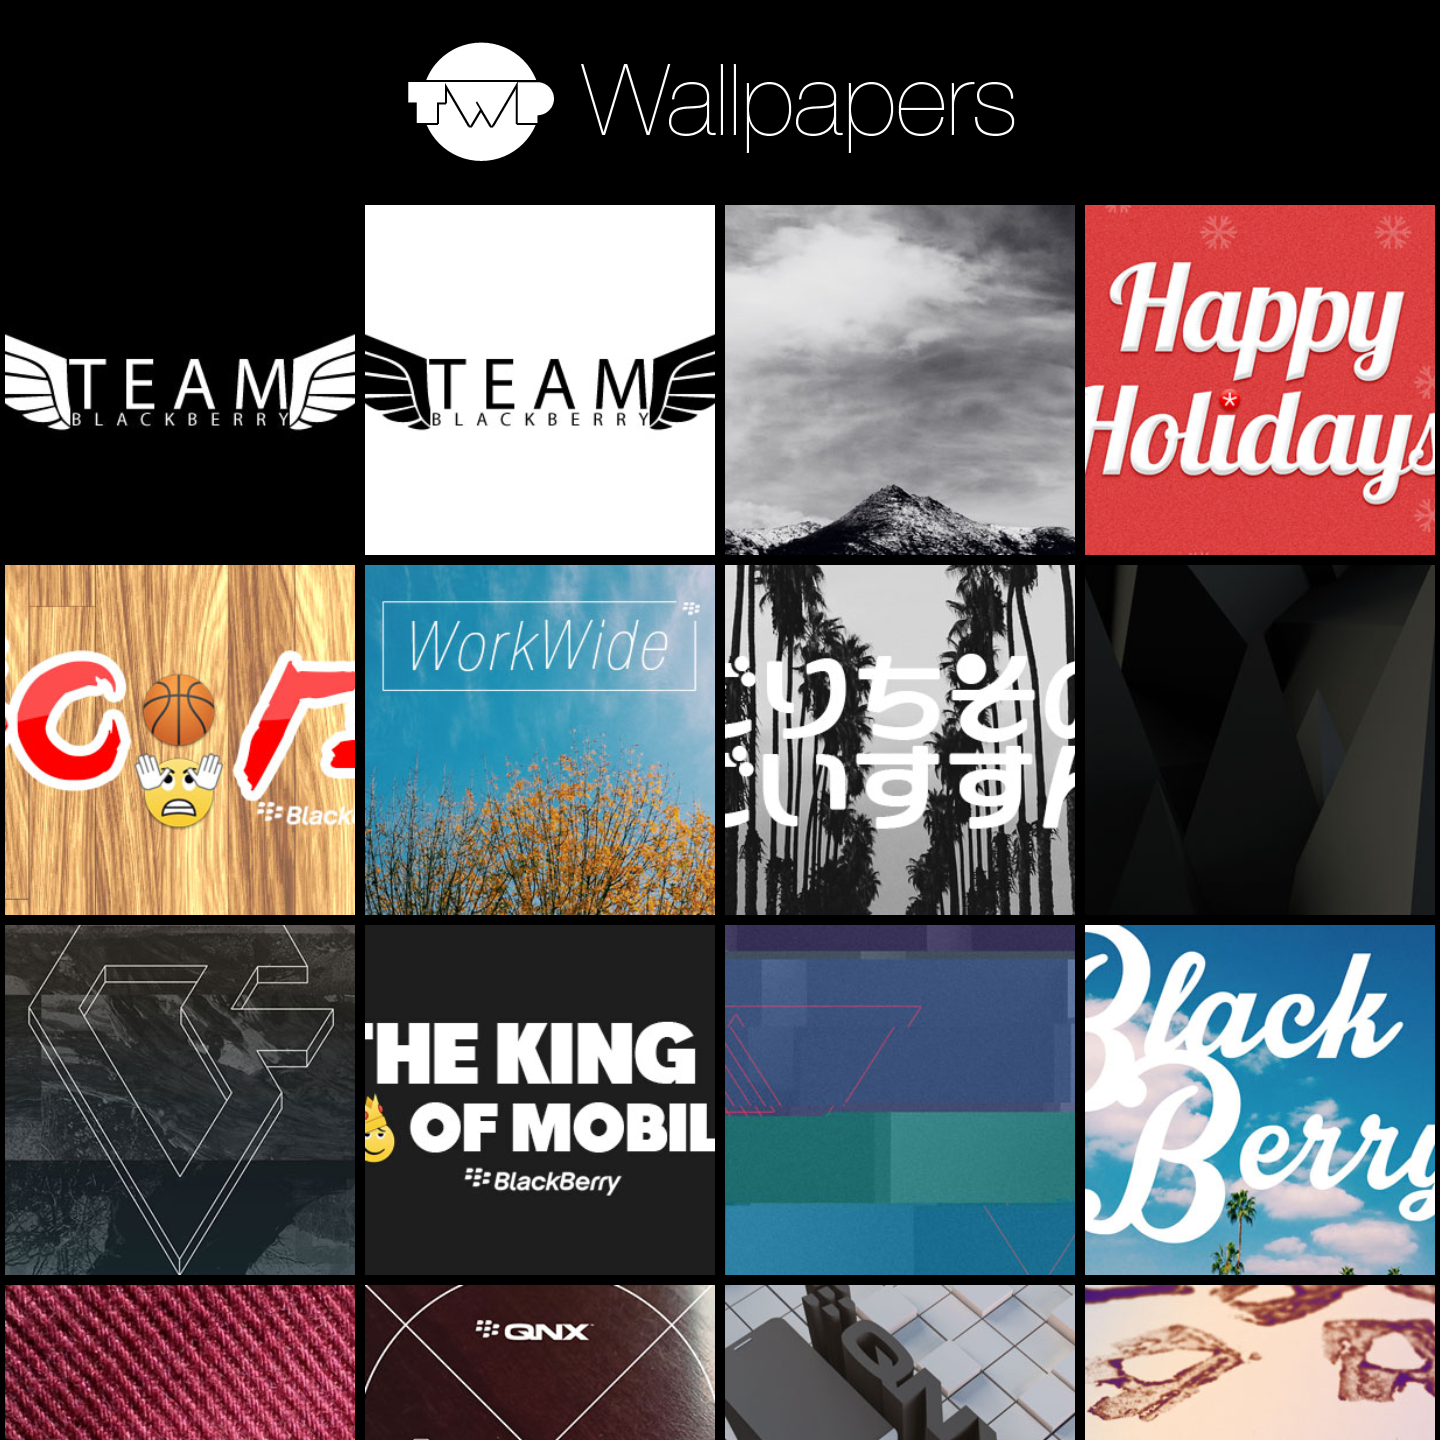 Pootermobile Wallpapers app updated for Passport and Classic!